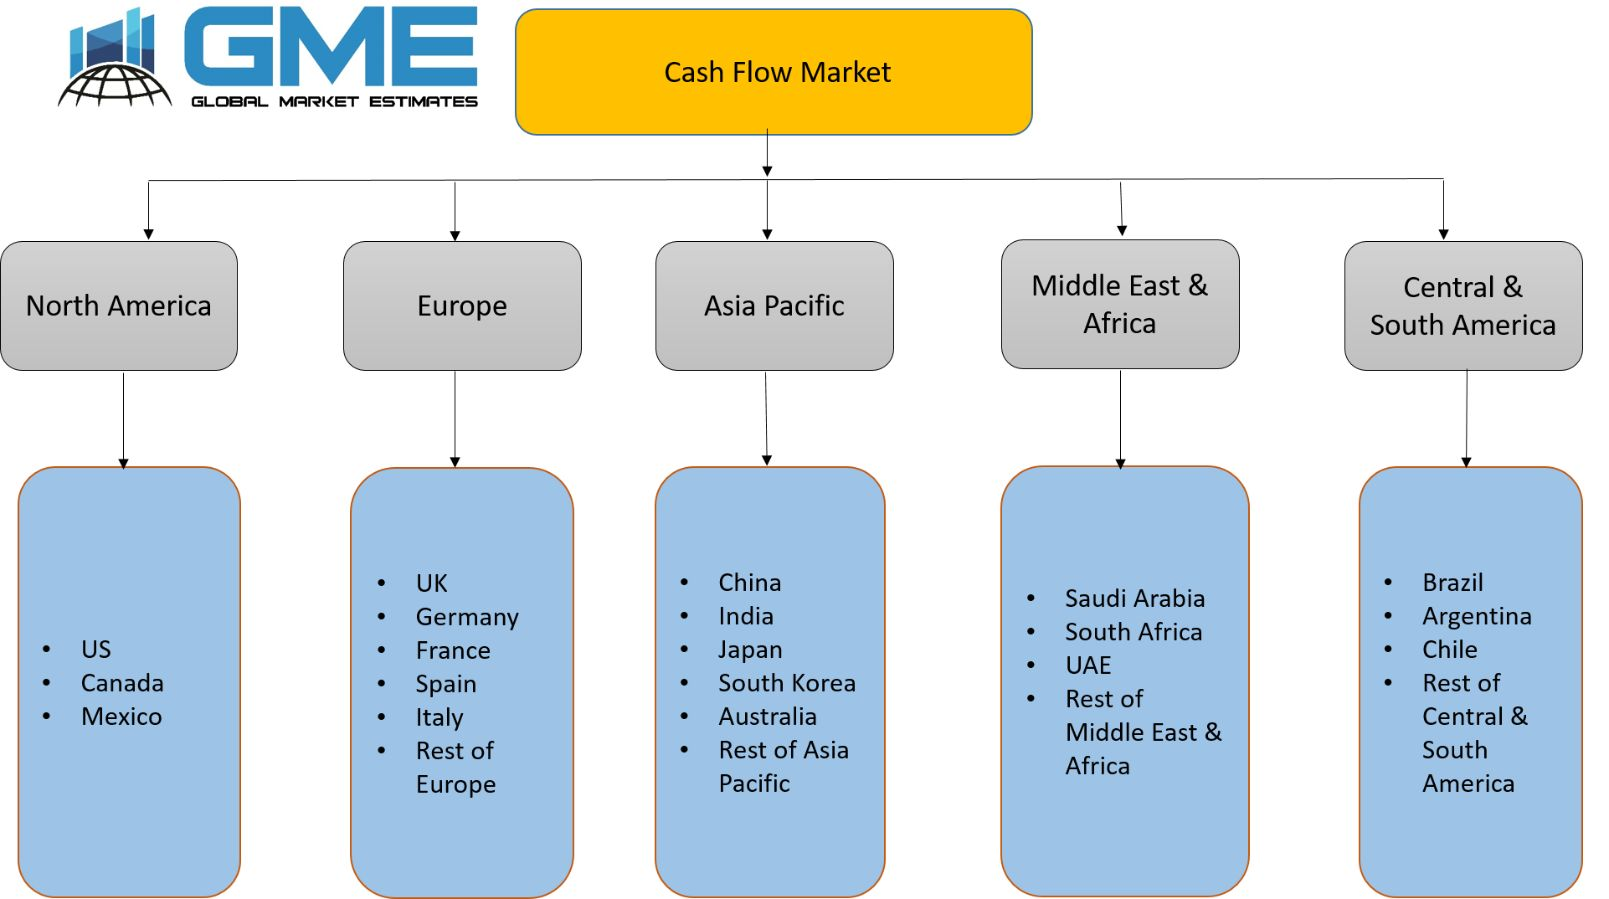 Cash Flow Market - Regional Analysis